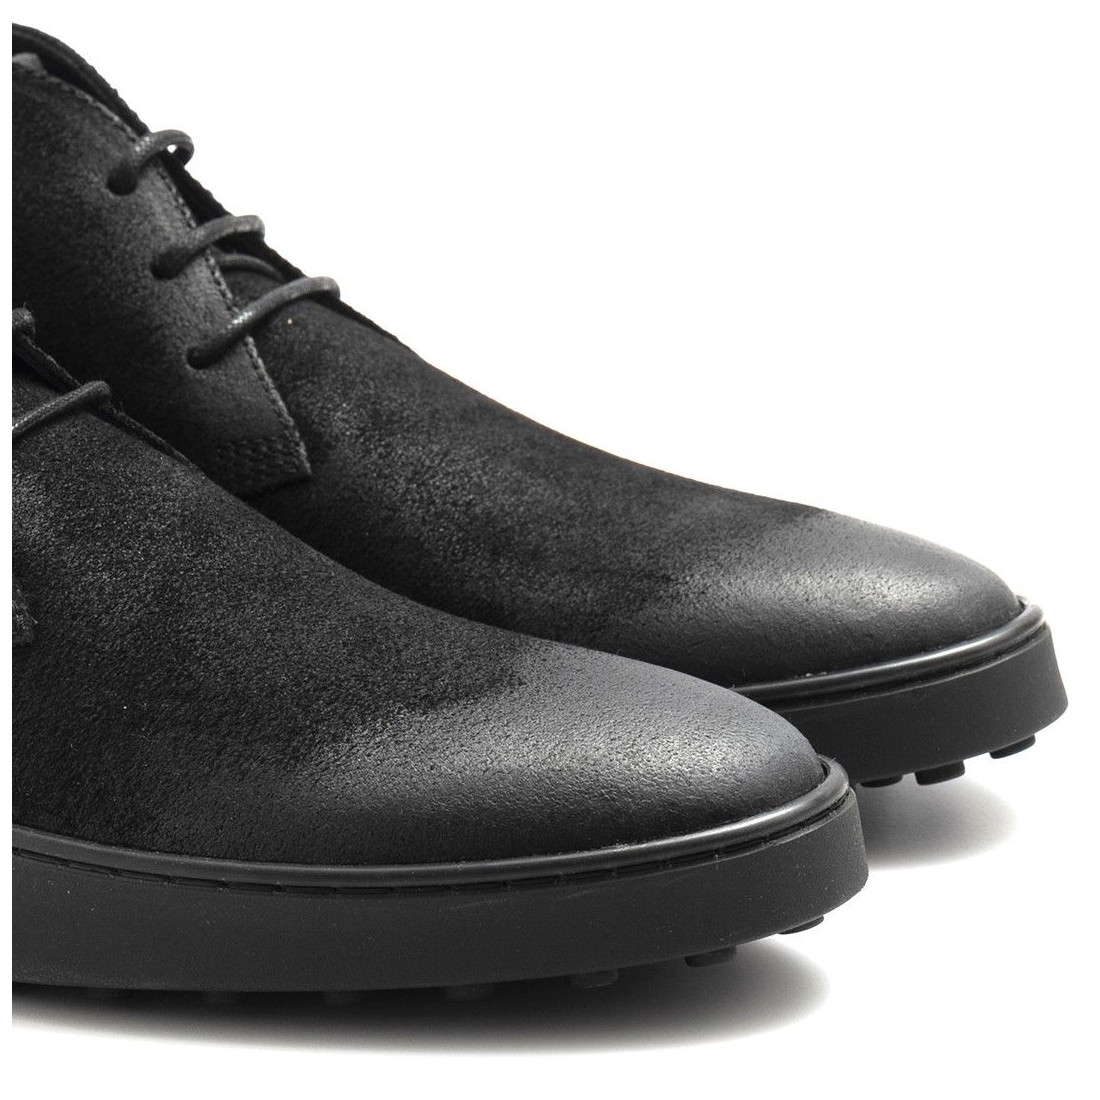 lace up ankle boots man tods xxm52b0aw50mugb999 4992